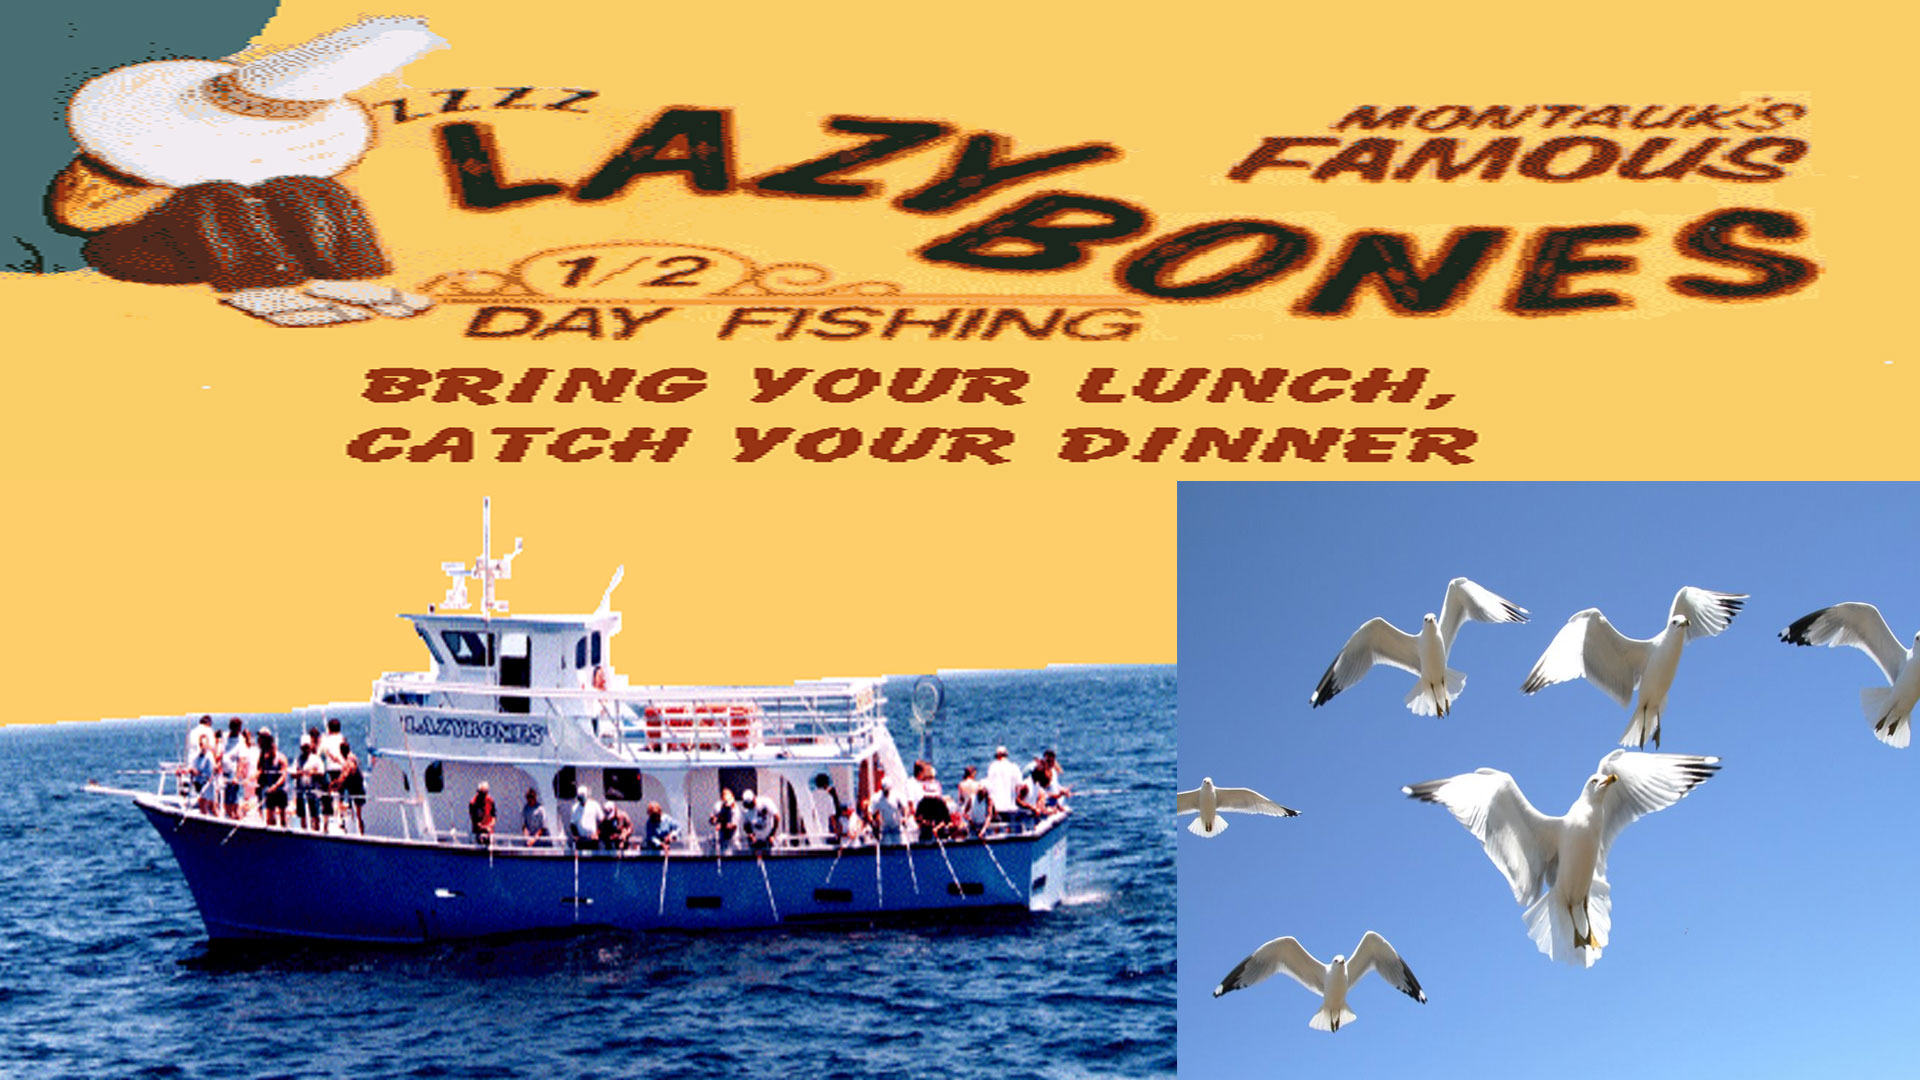 Good News Family has a great day on the LazyBones charter